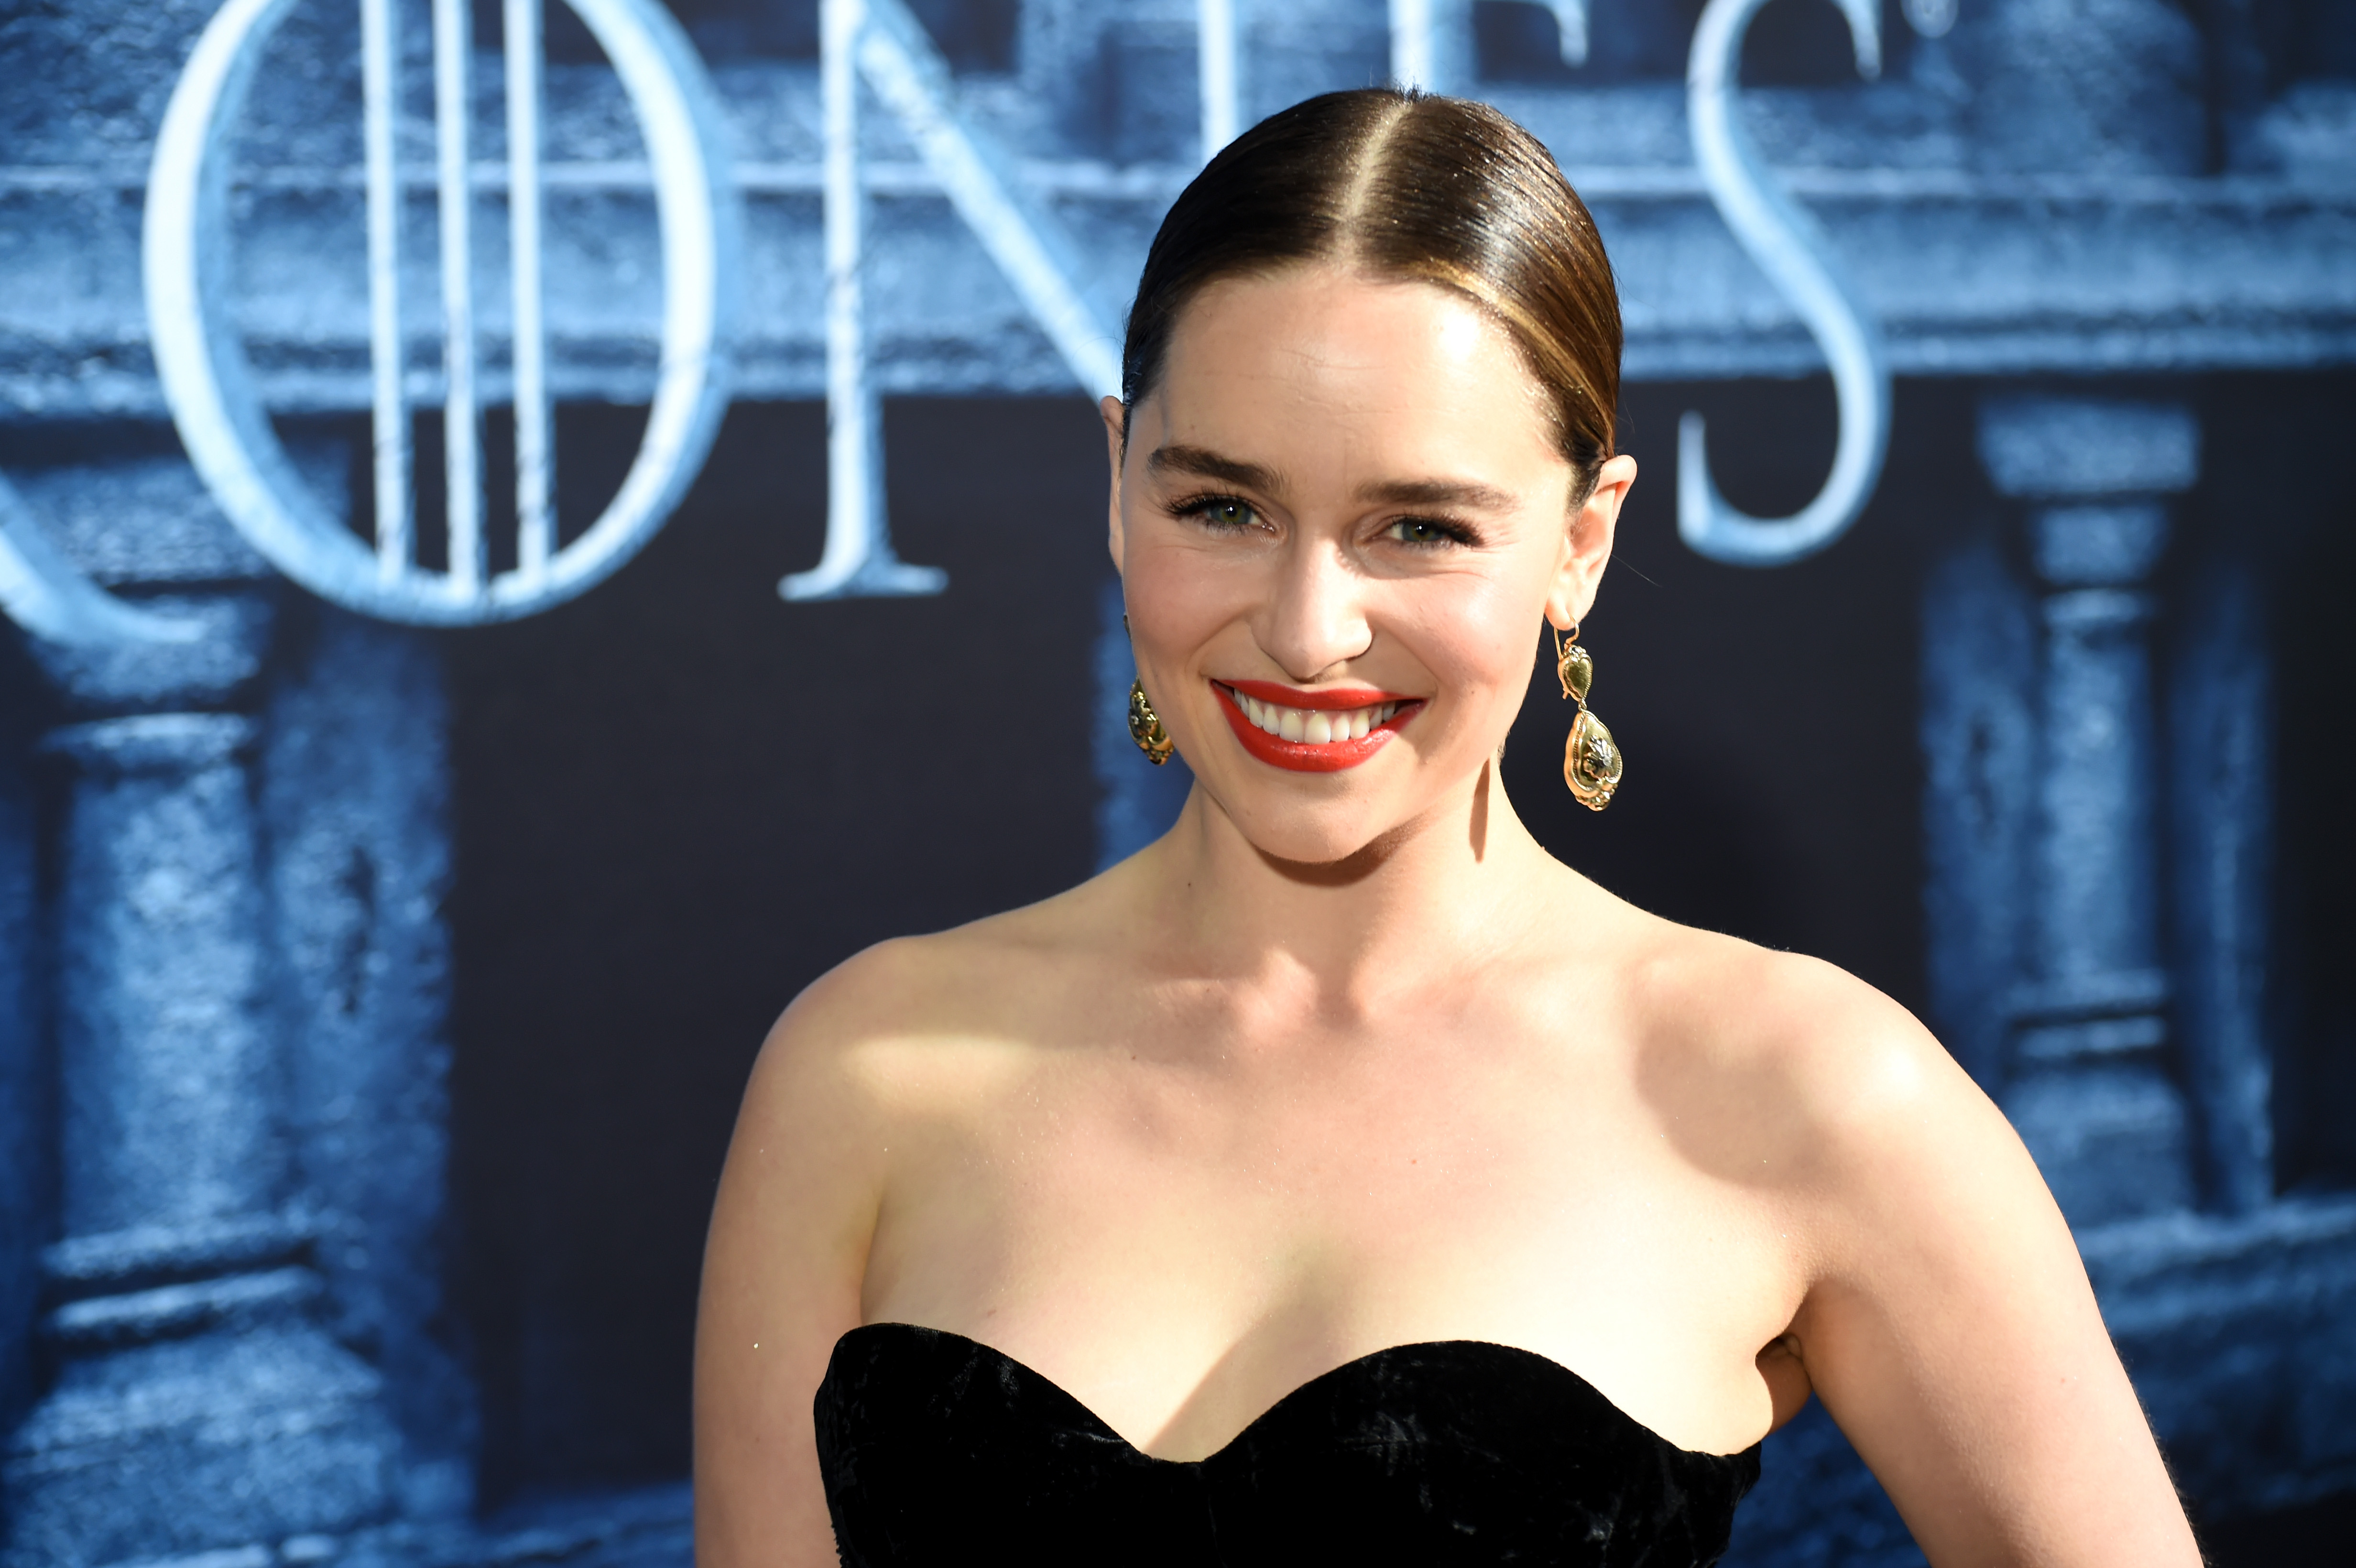 Emilia Clarke wore a sheer sweater with a lacy bra and now we want to do the same